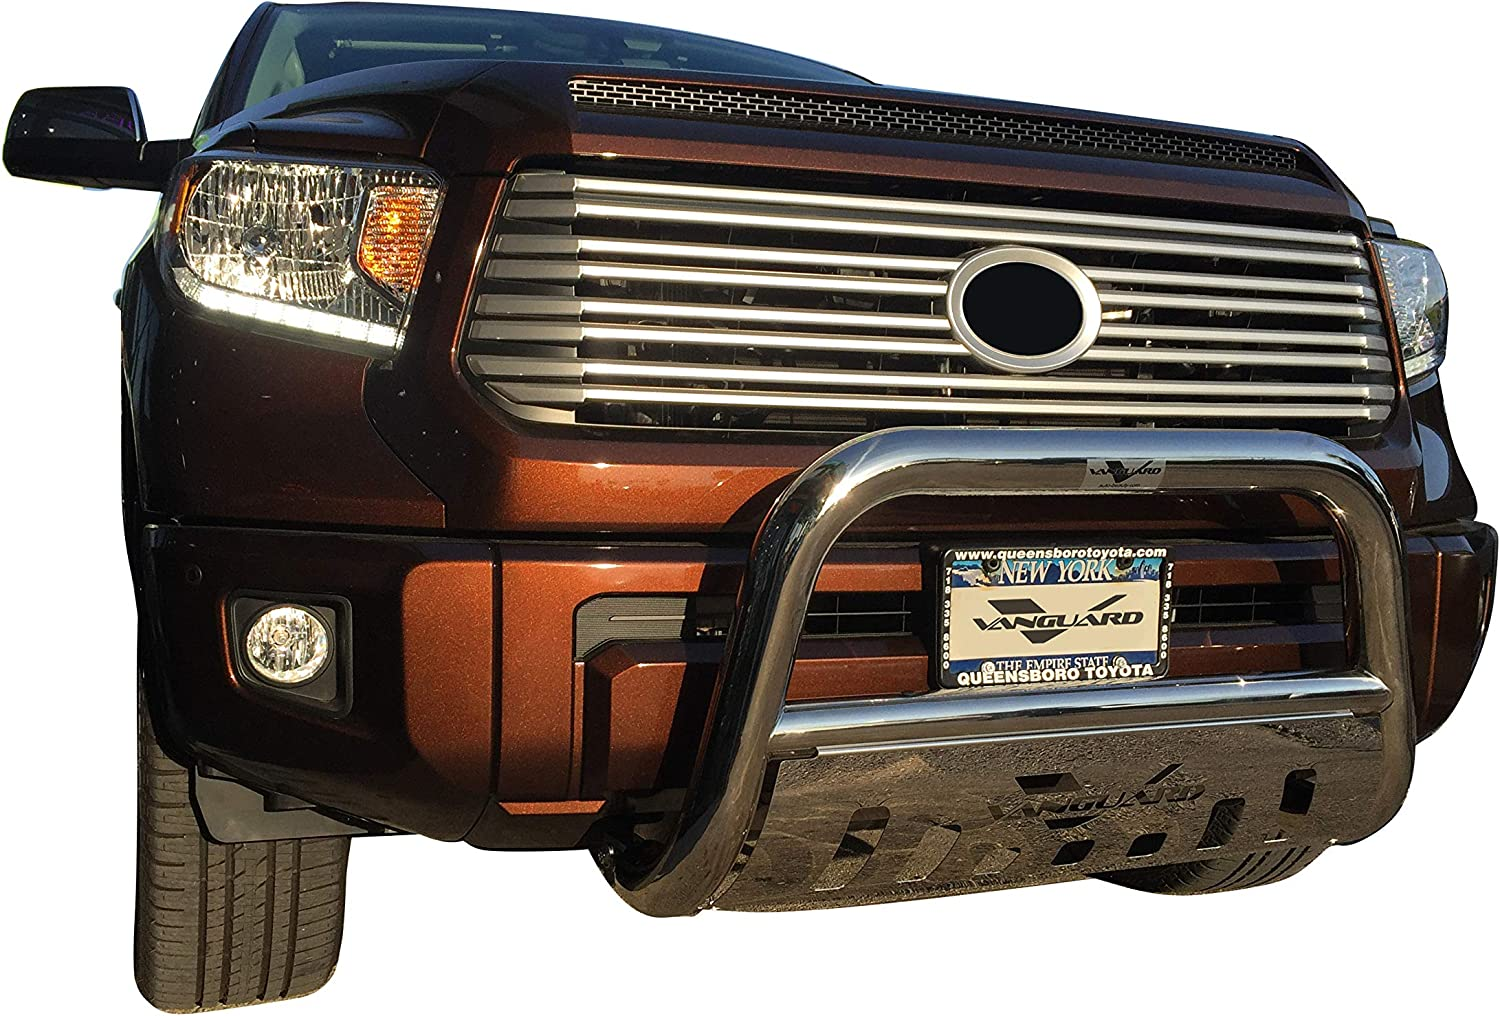 VGUBG-0453SS Stainless Steel Multi-fit Wide Bull Bar